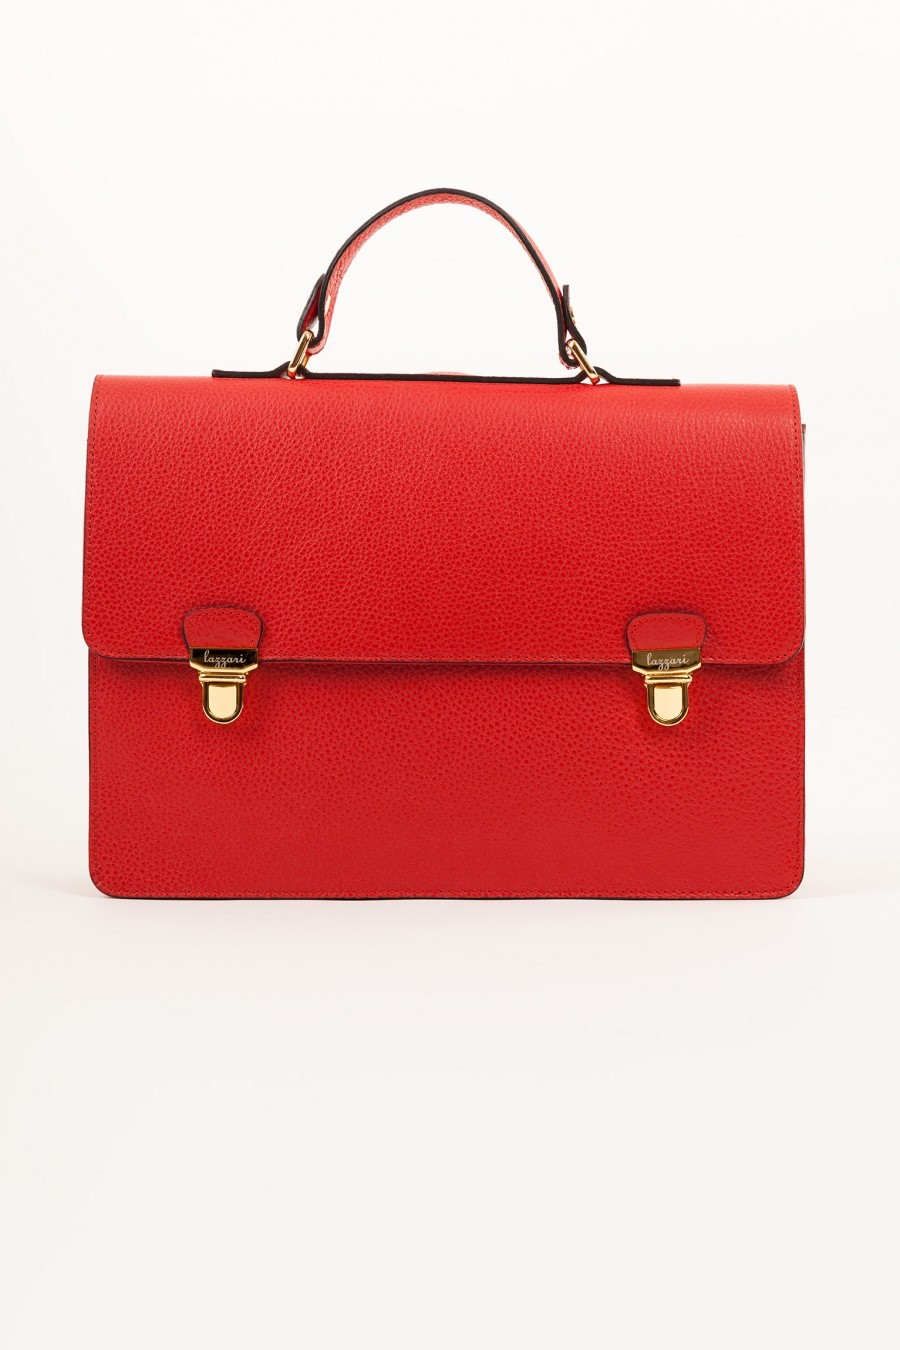 satchel red